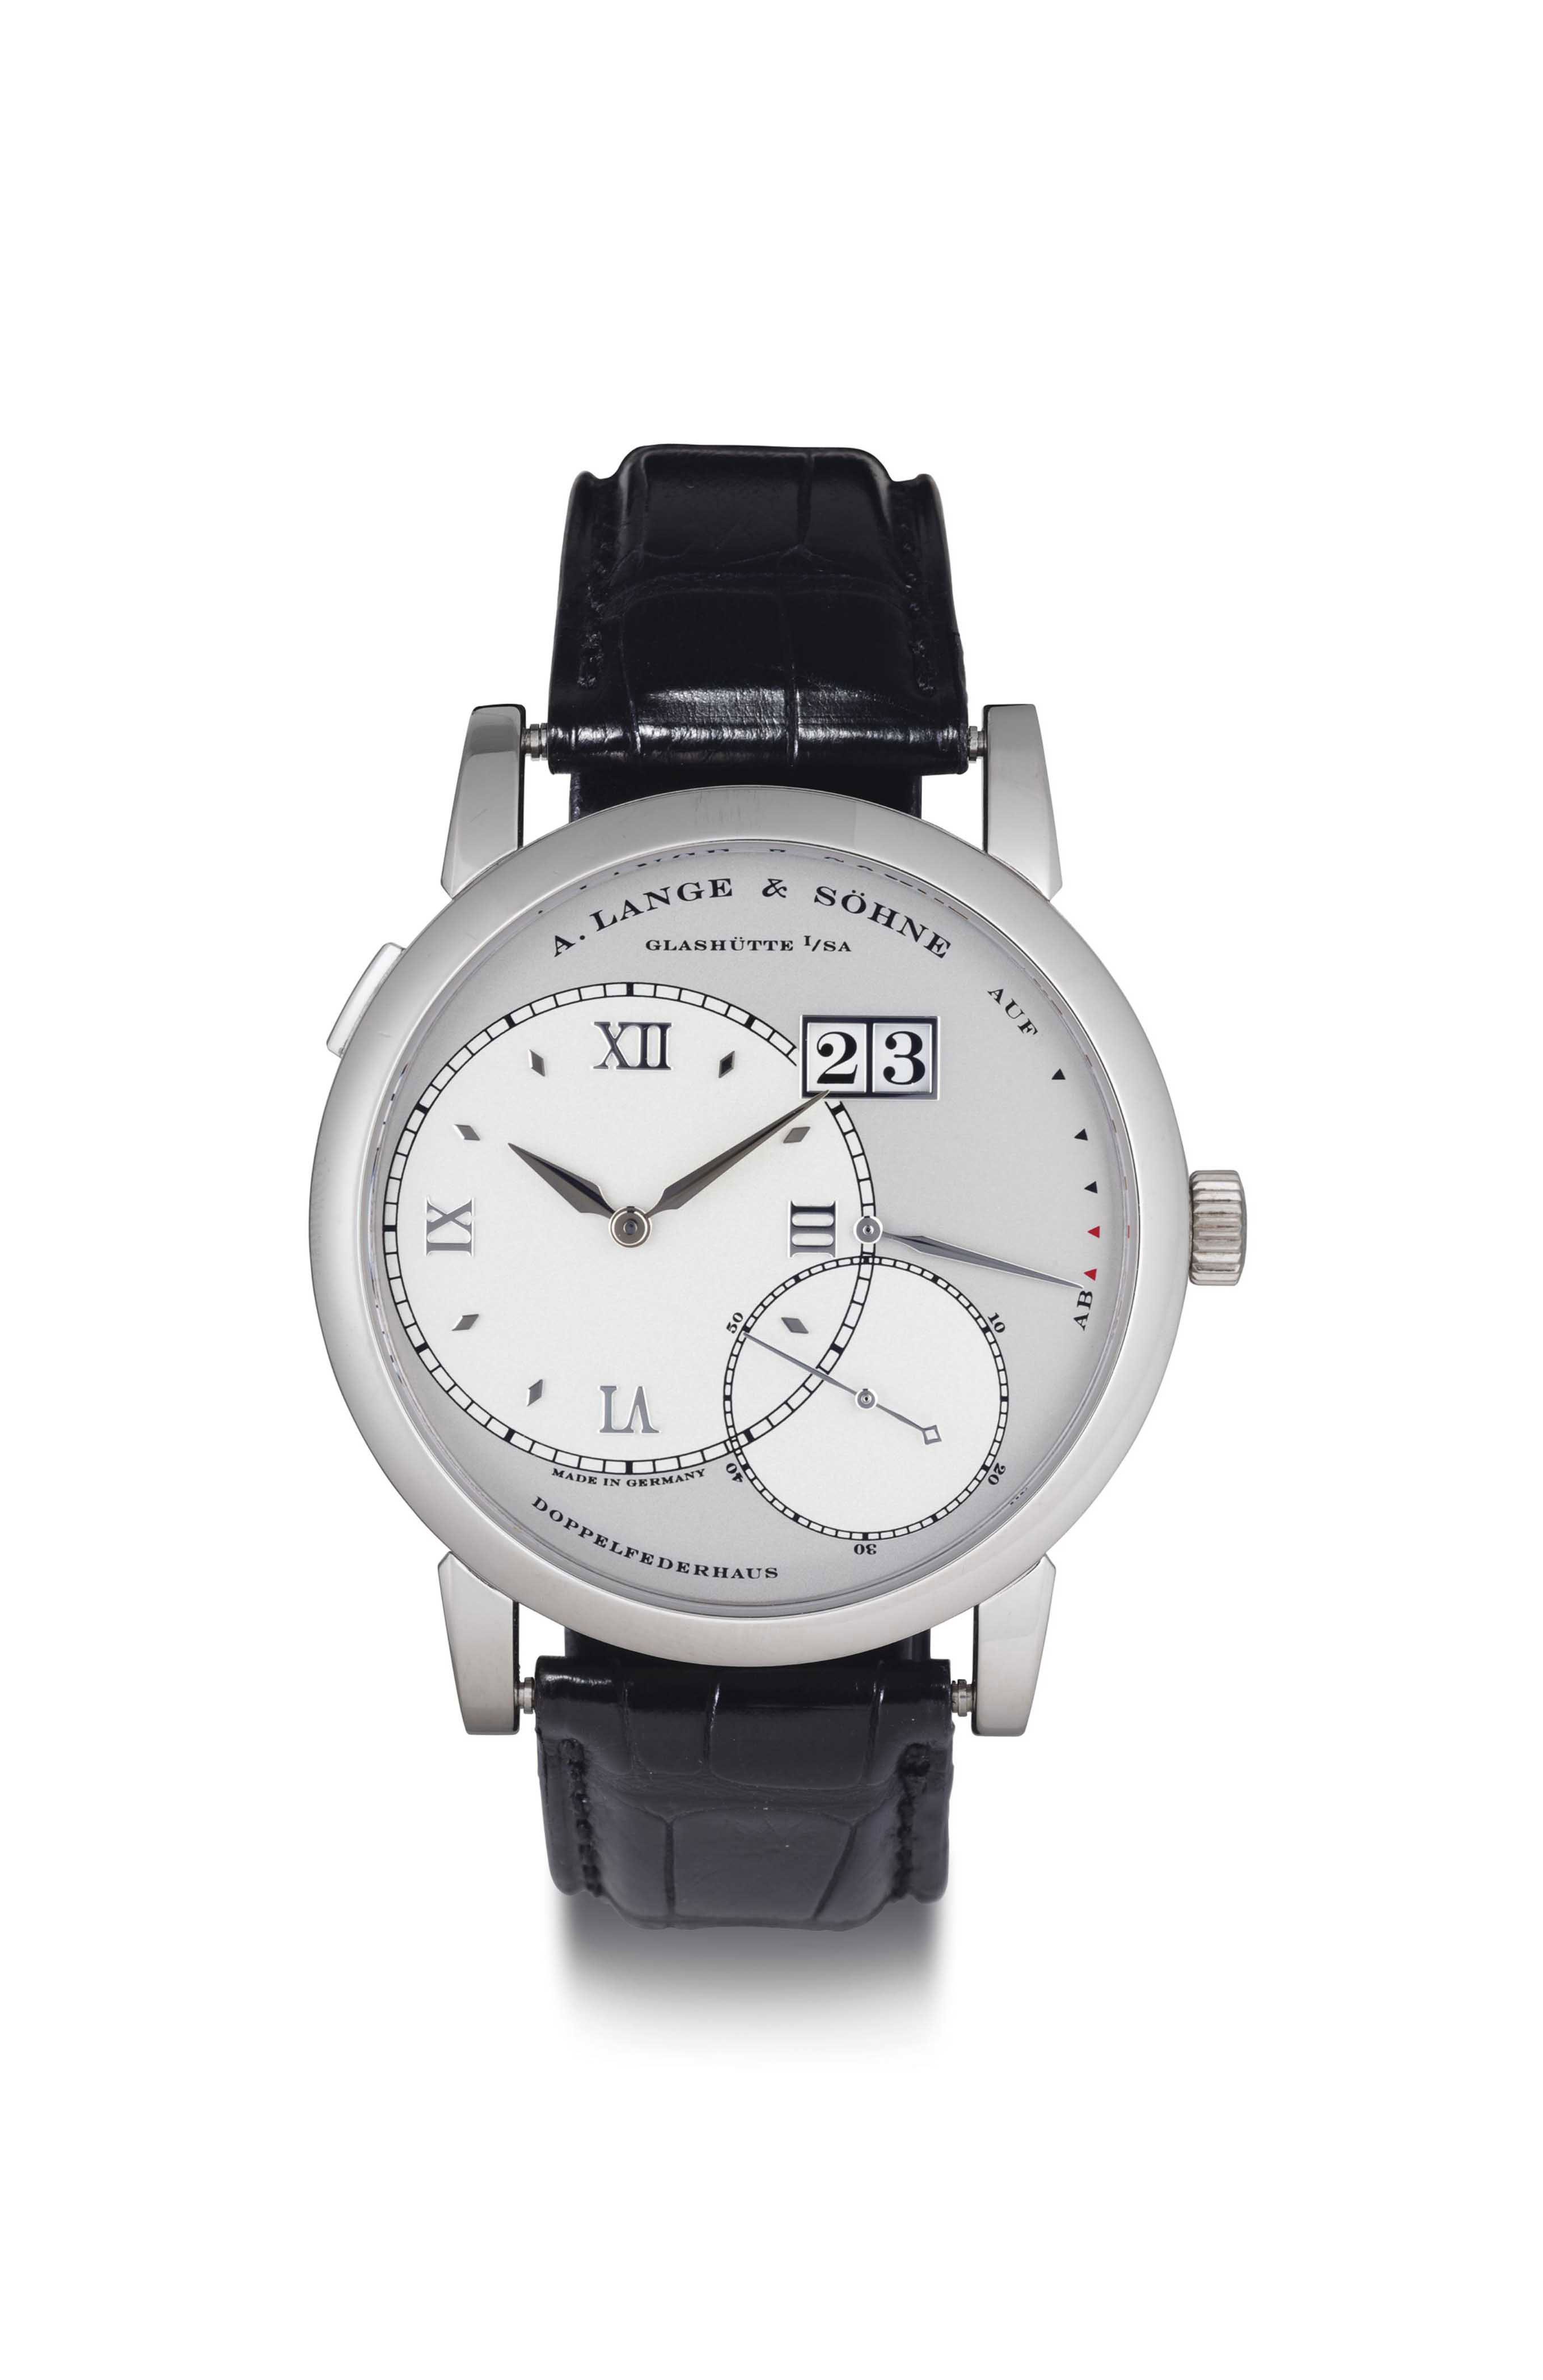 A. LANGE & SÖHNE.  A FINE PLATINUM WRISTWATCH WITH DATE AND POWER RESERVE